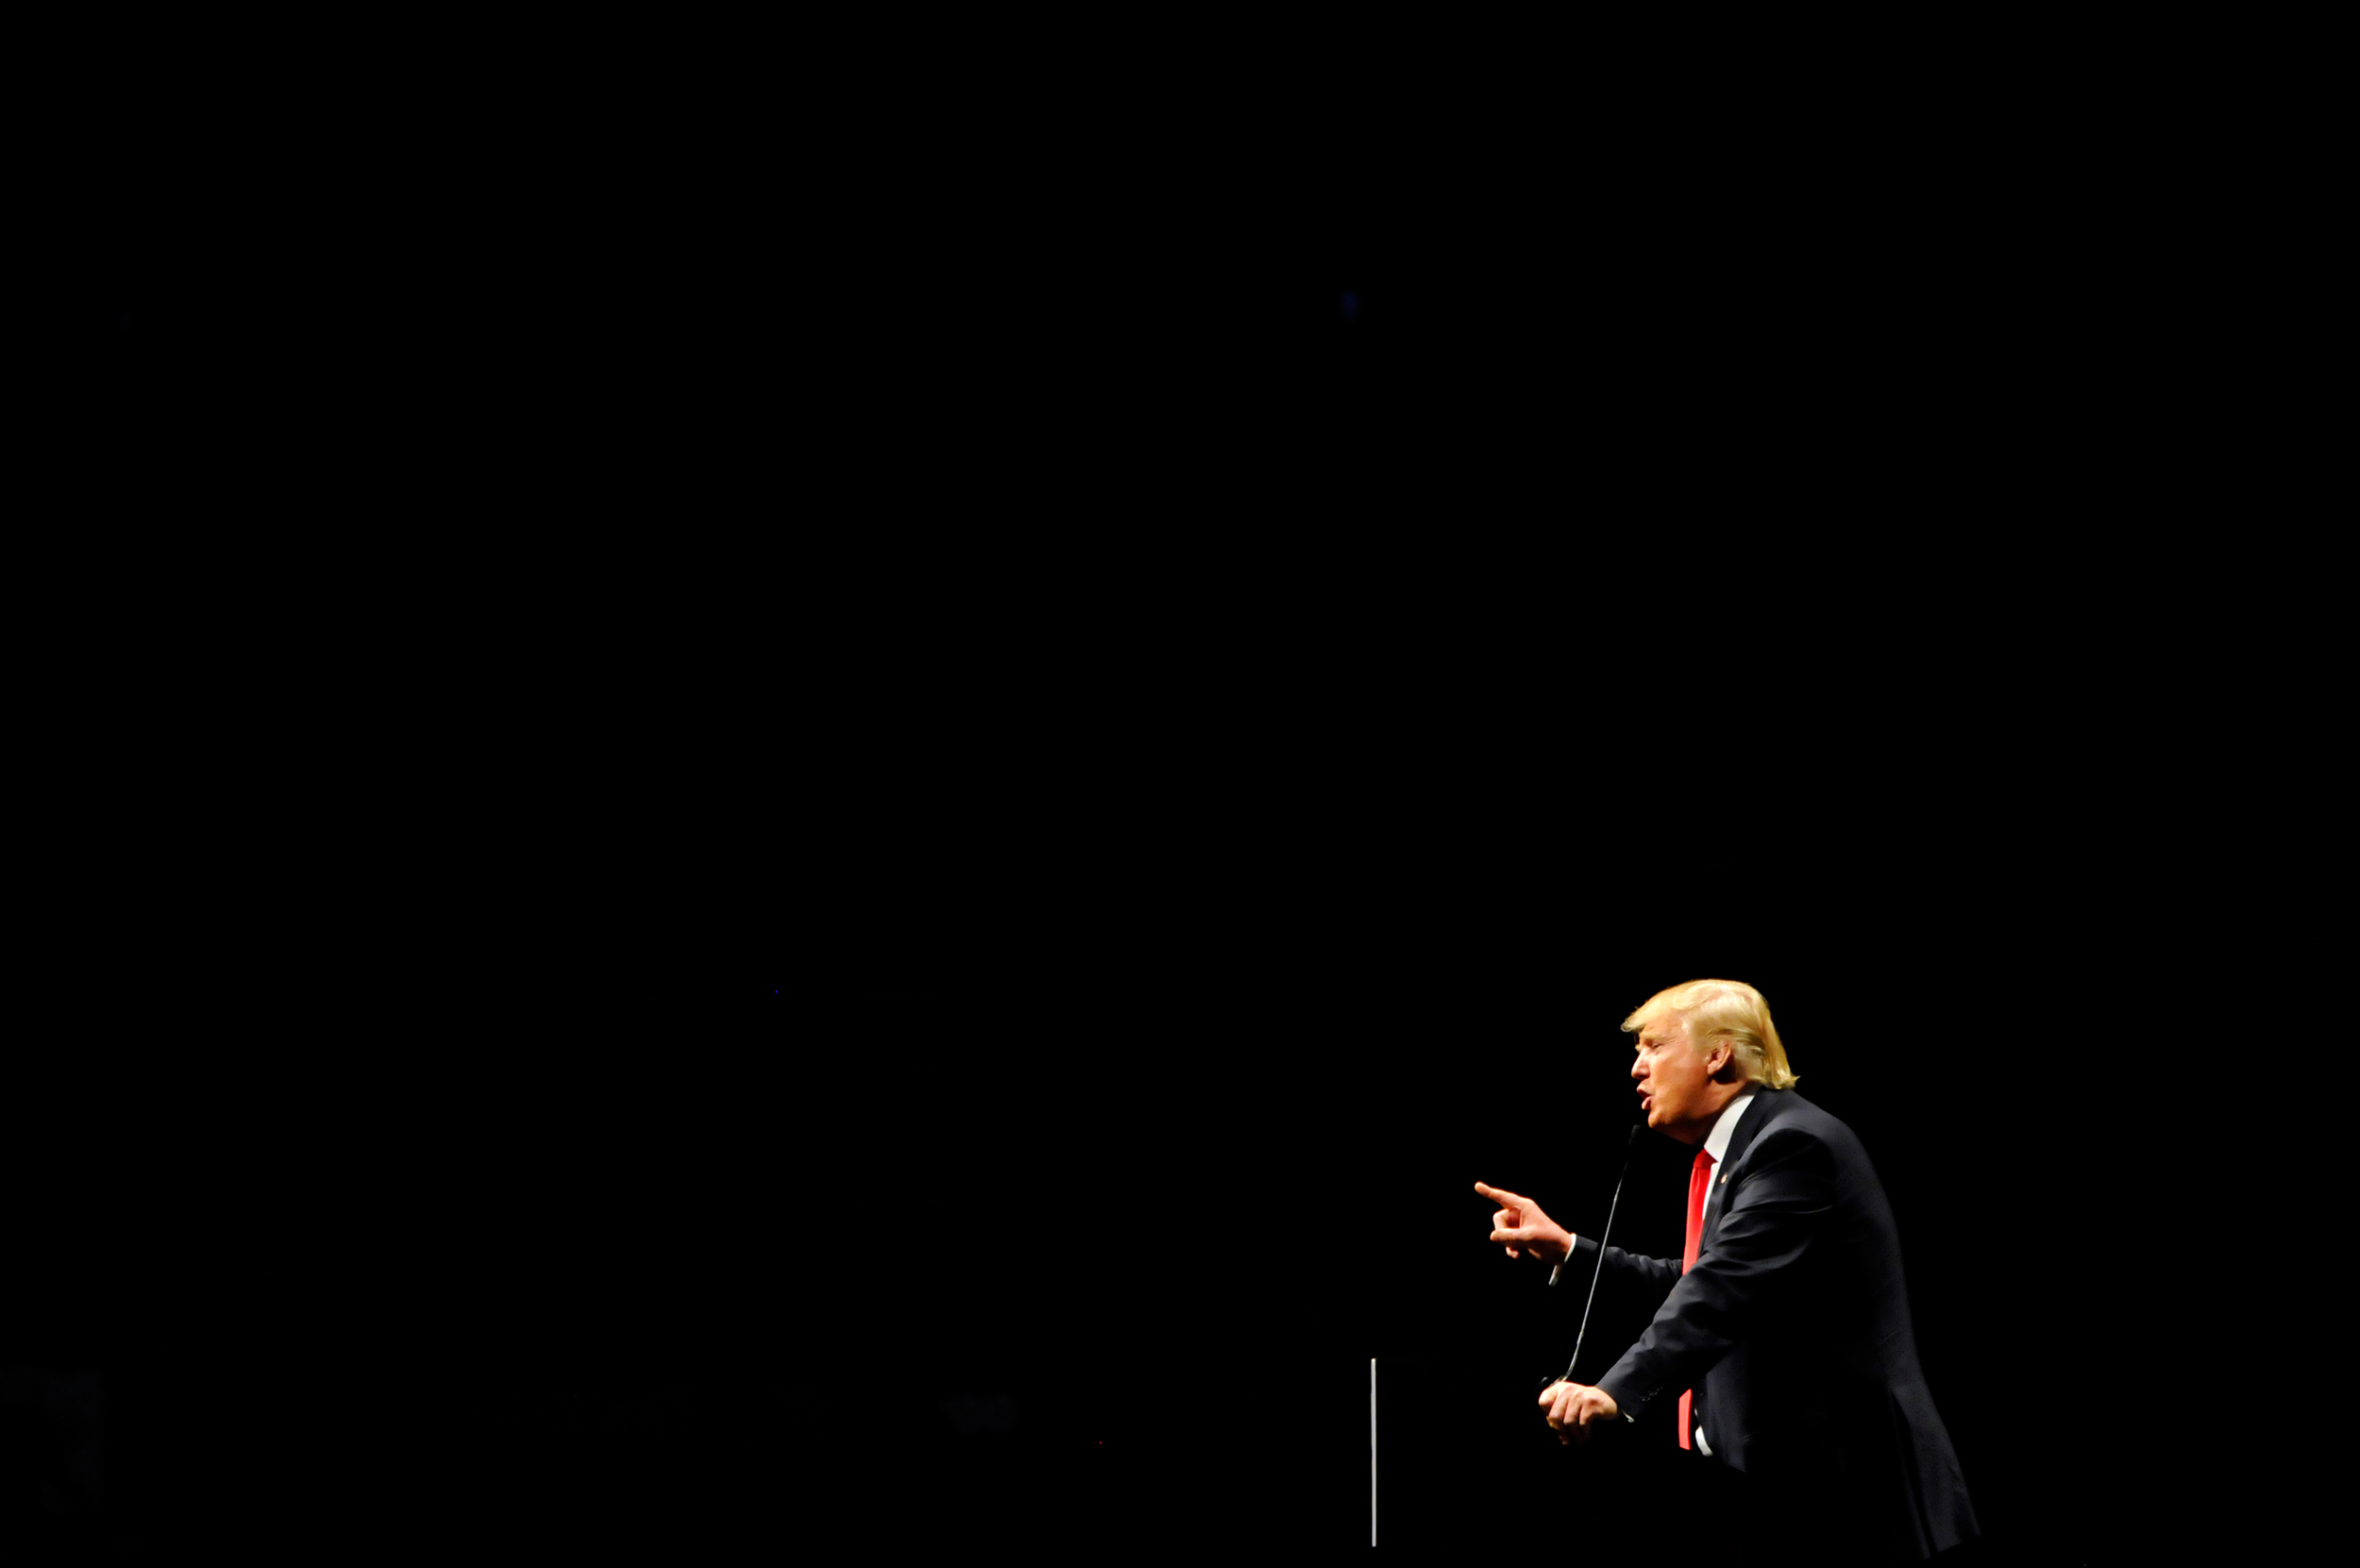 Republican U.S. presidential candidate Donald Trump speaks at his campaign rally in Oklahoma City, Oklahoma February 26, 2016. REUTERS/Nick Oxford